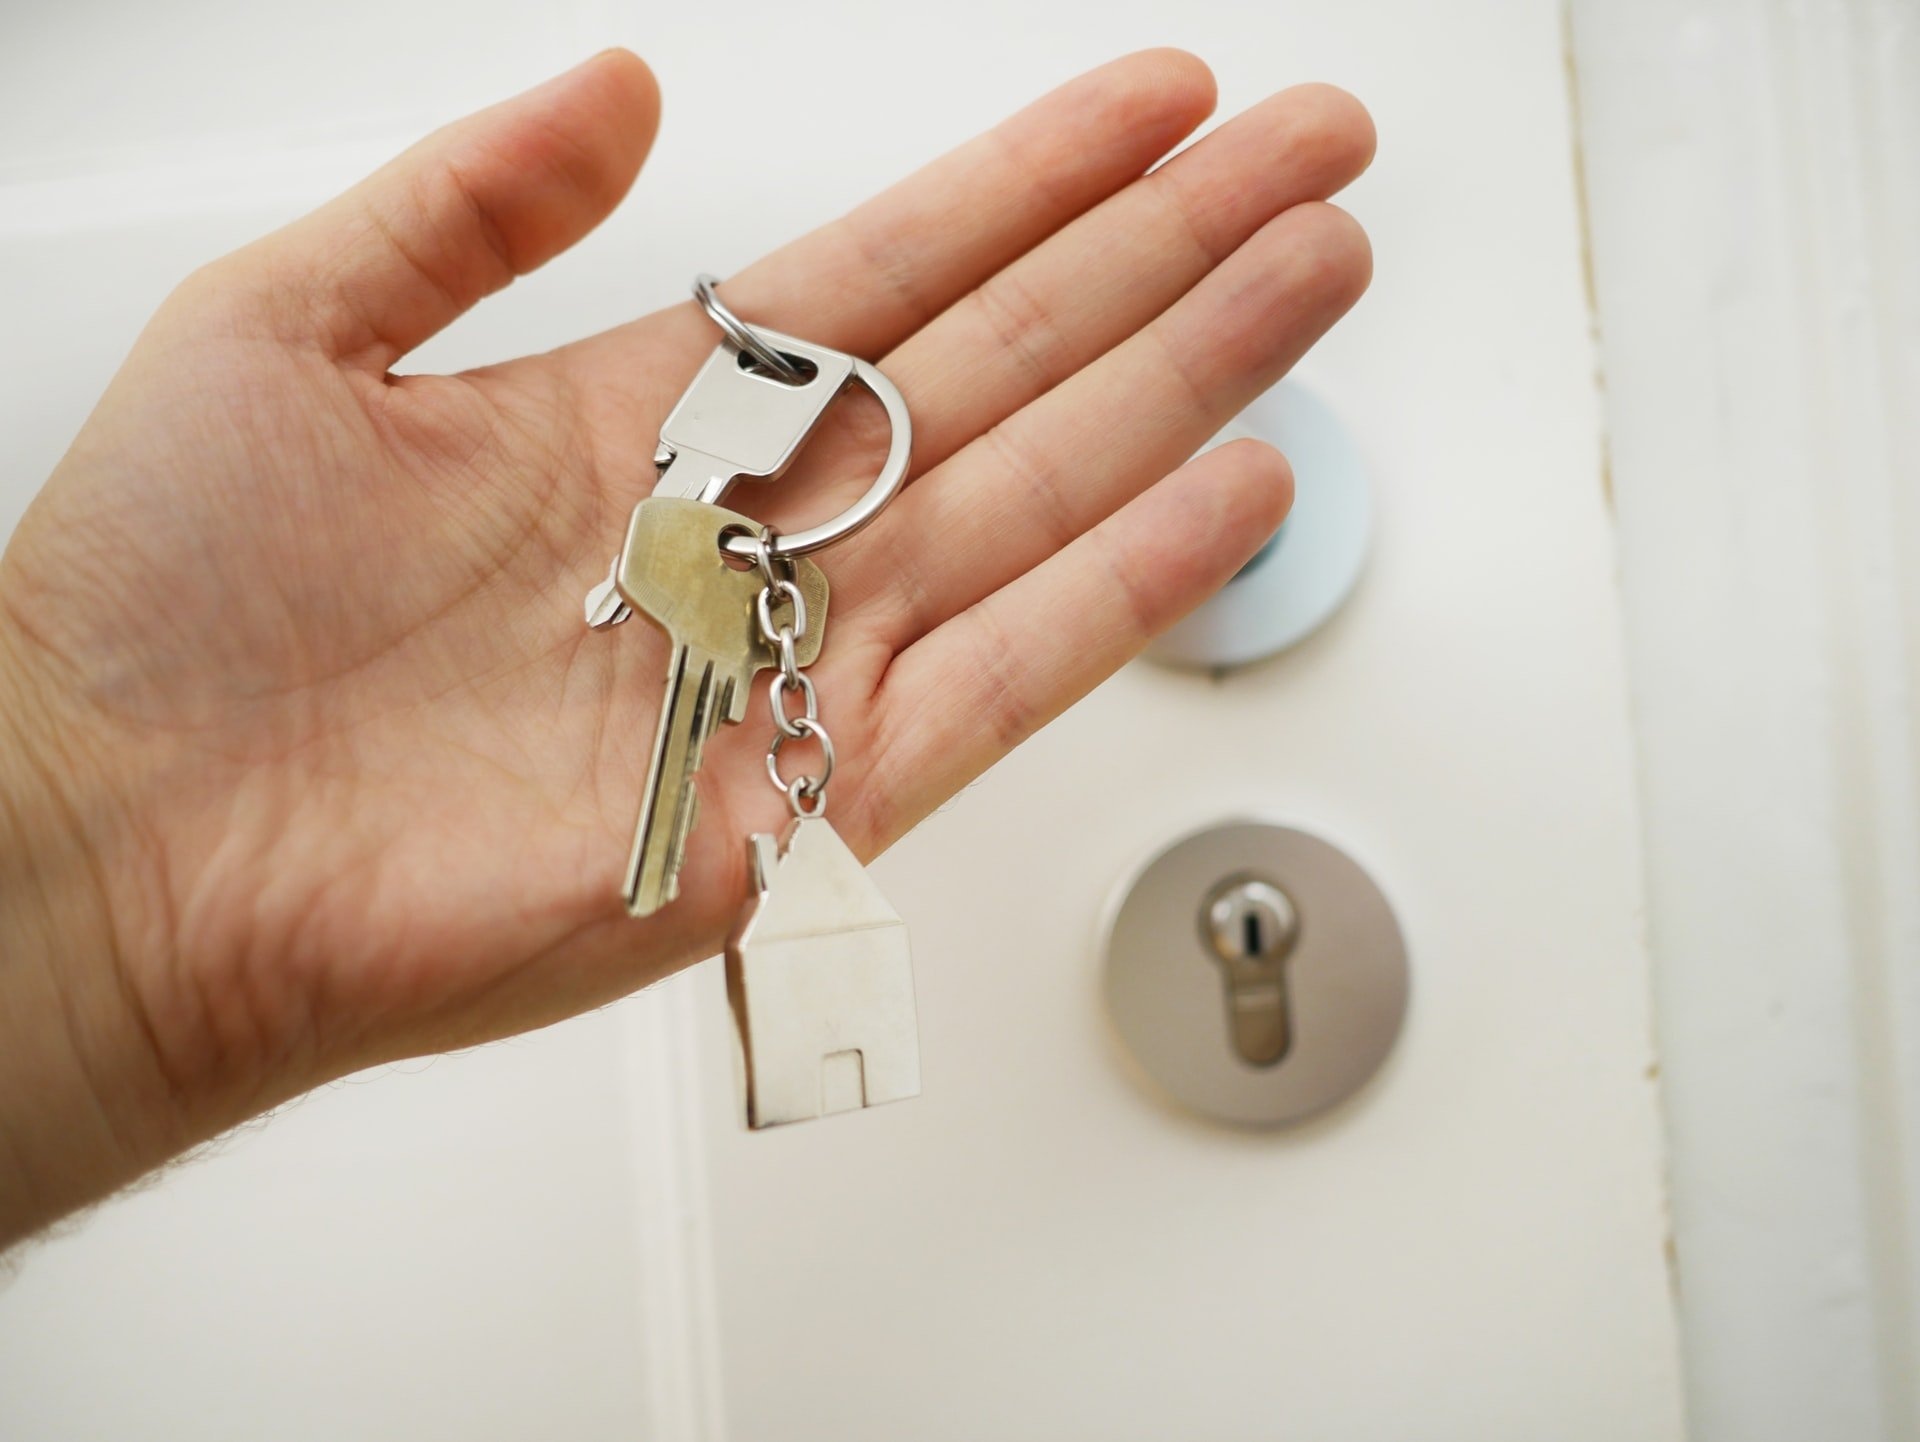 What Is A 95% Mortgage And Who Is Eligible?